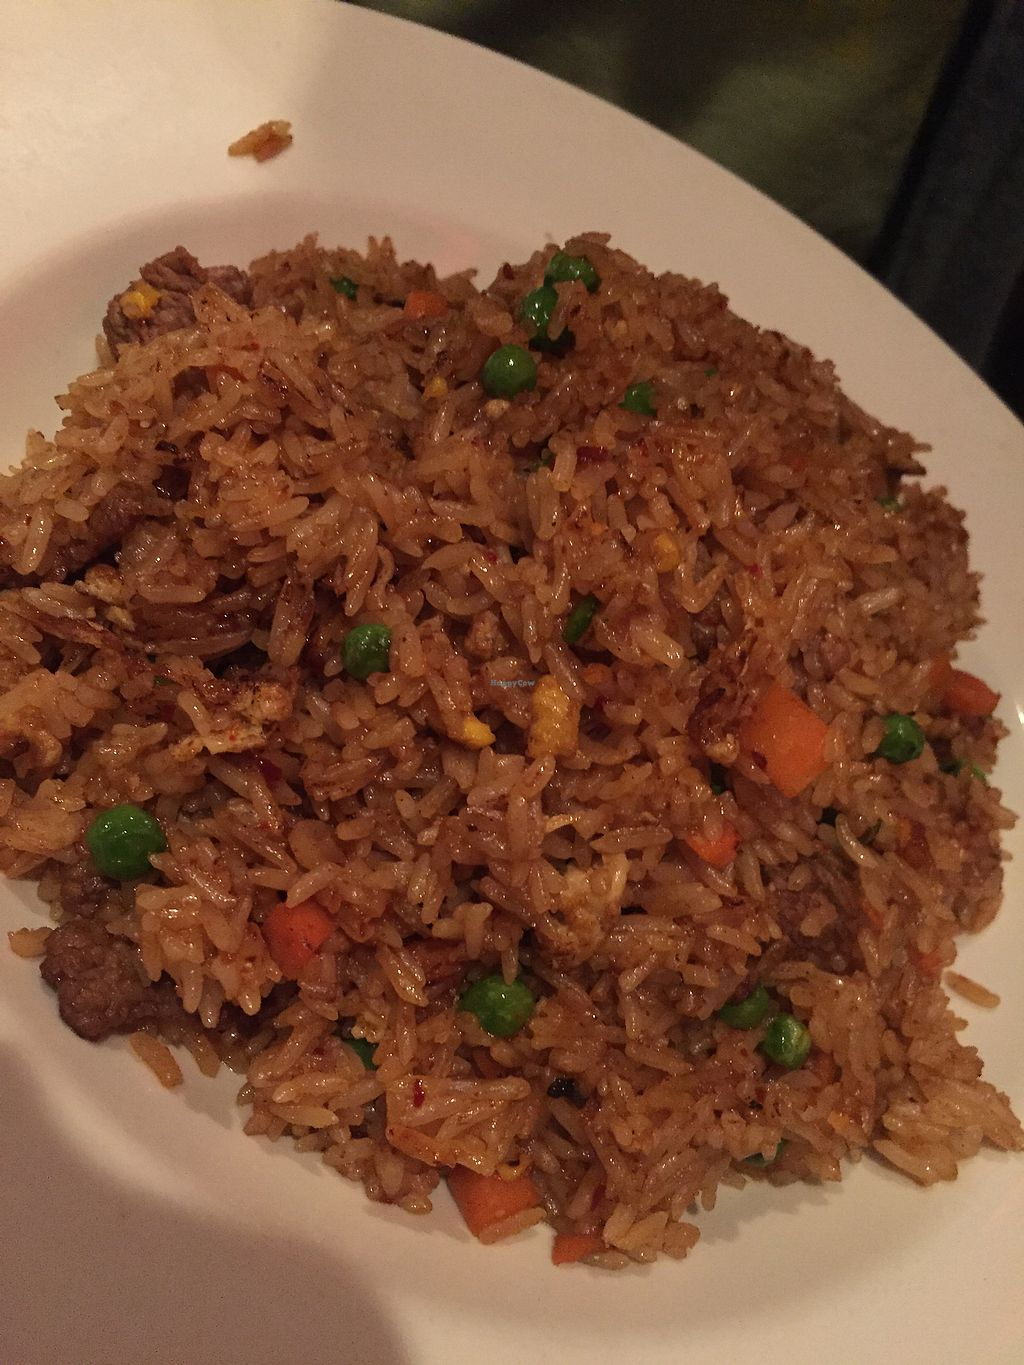 "Photo of Jasmine Thai Cuisine  by <a href=""/members/profile/happycowgirl"">happycowgirl</a> <br/>fried rice - huge portions! <br/> July 18, 2017  - <a href='/contact/abuse/image/72697/281644'>Report</a>"